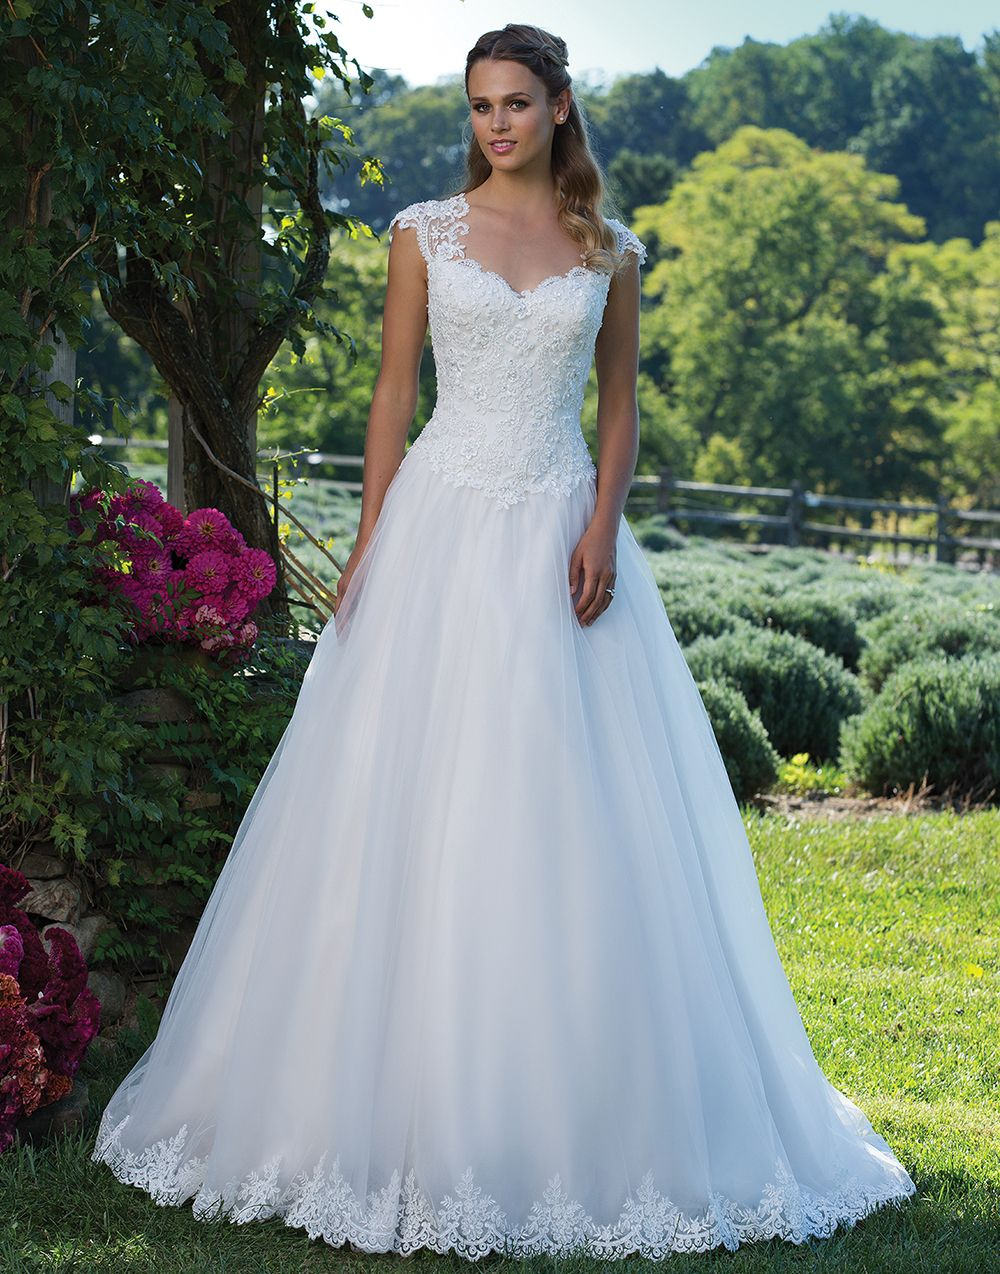 Pin by Heart to Heart Bridal on Webster-Sample Sizes 16 & Up ...